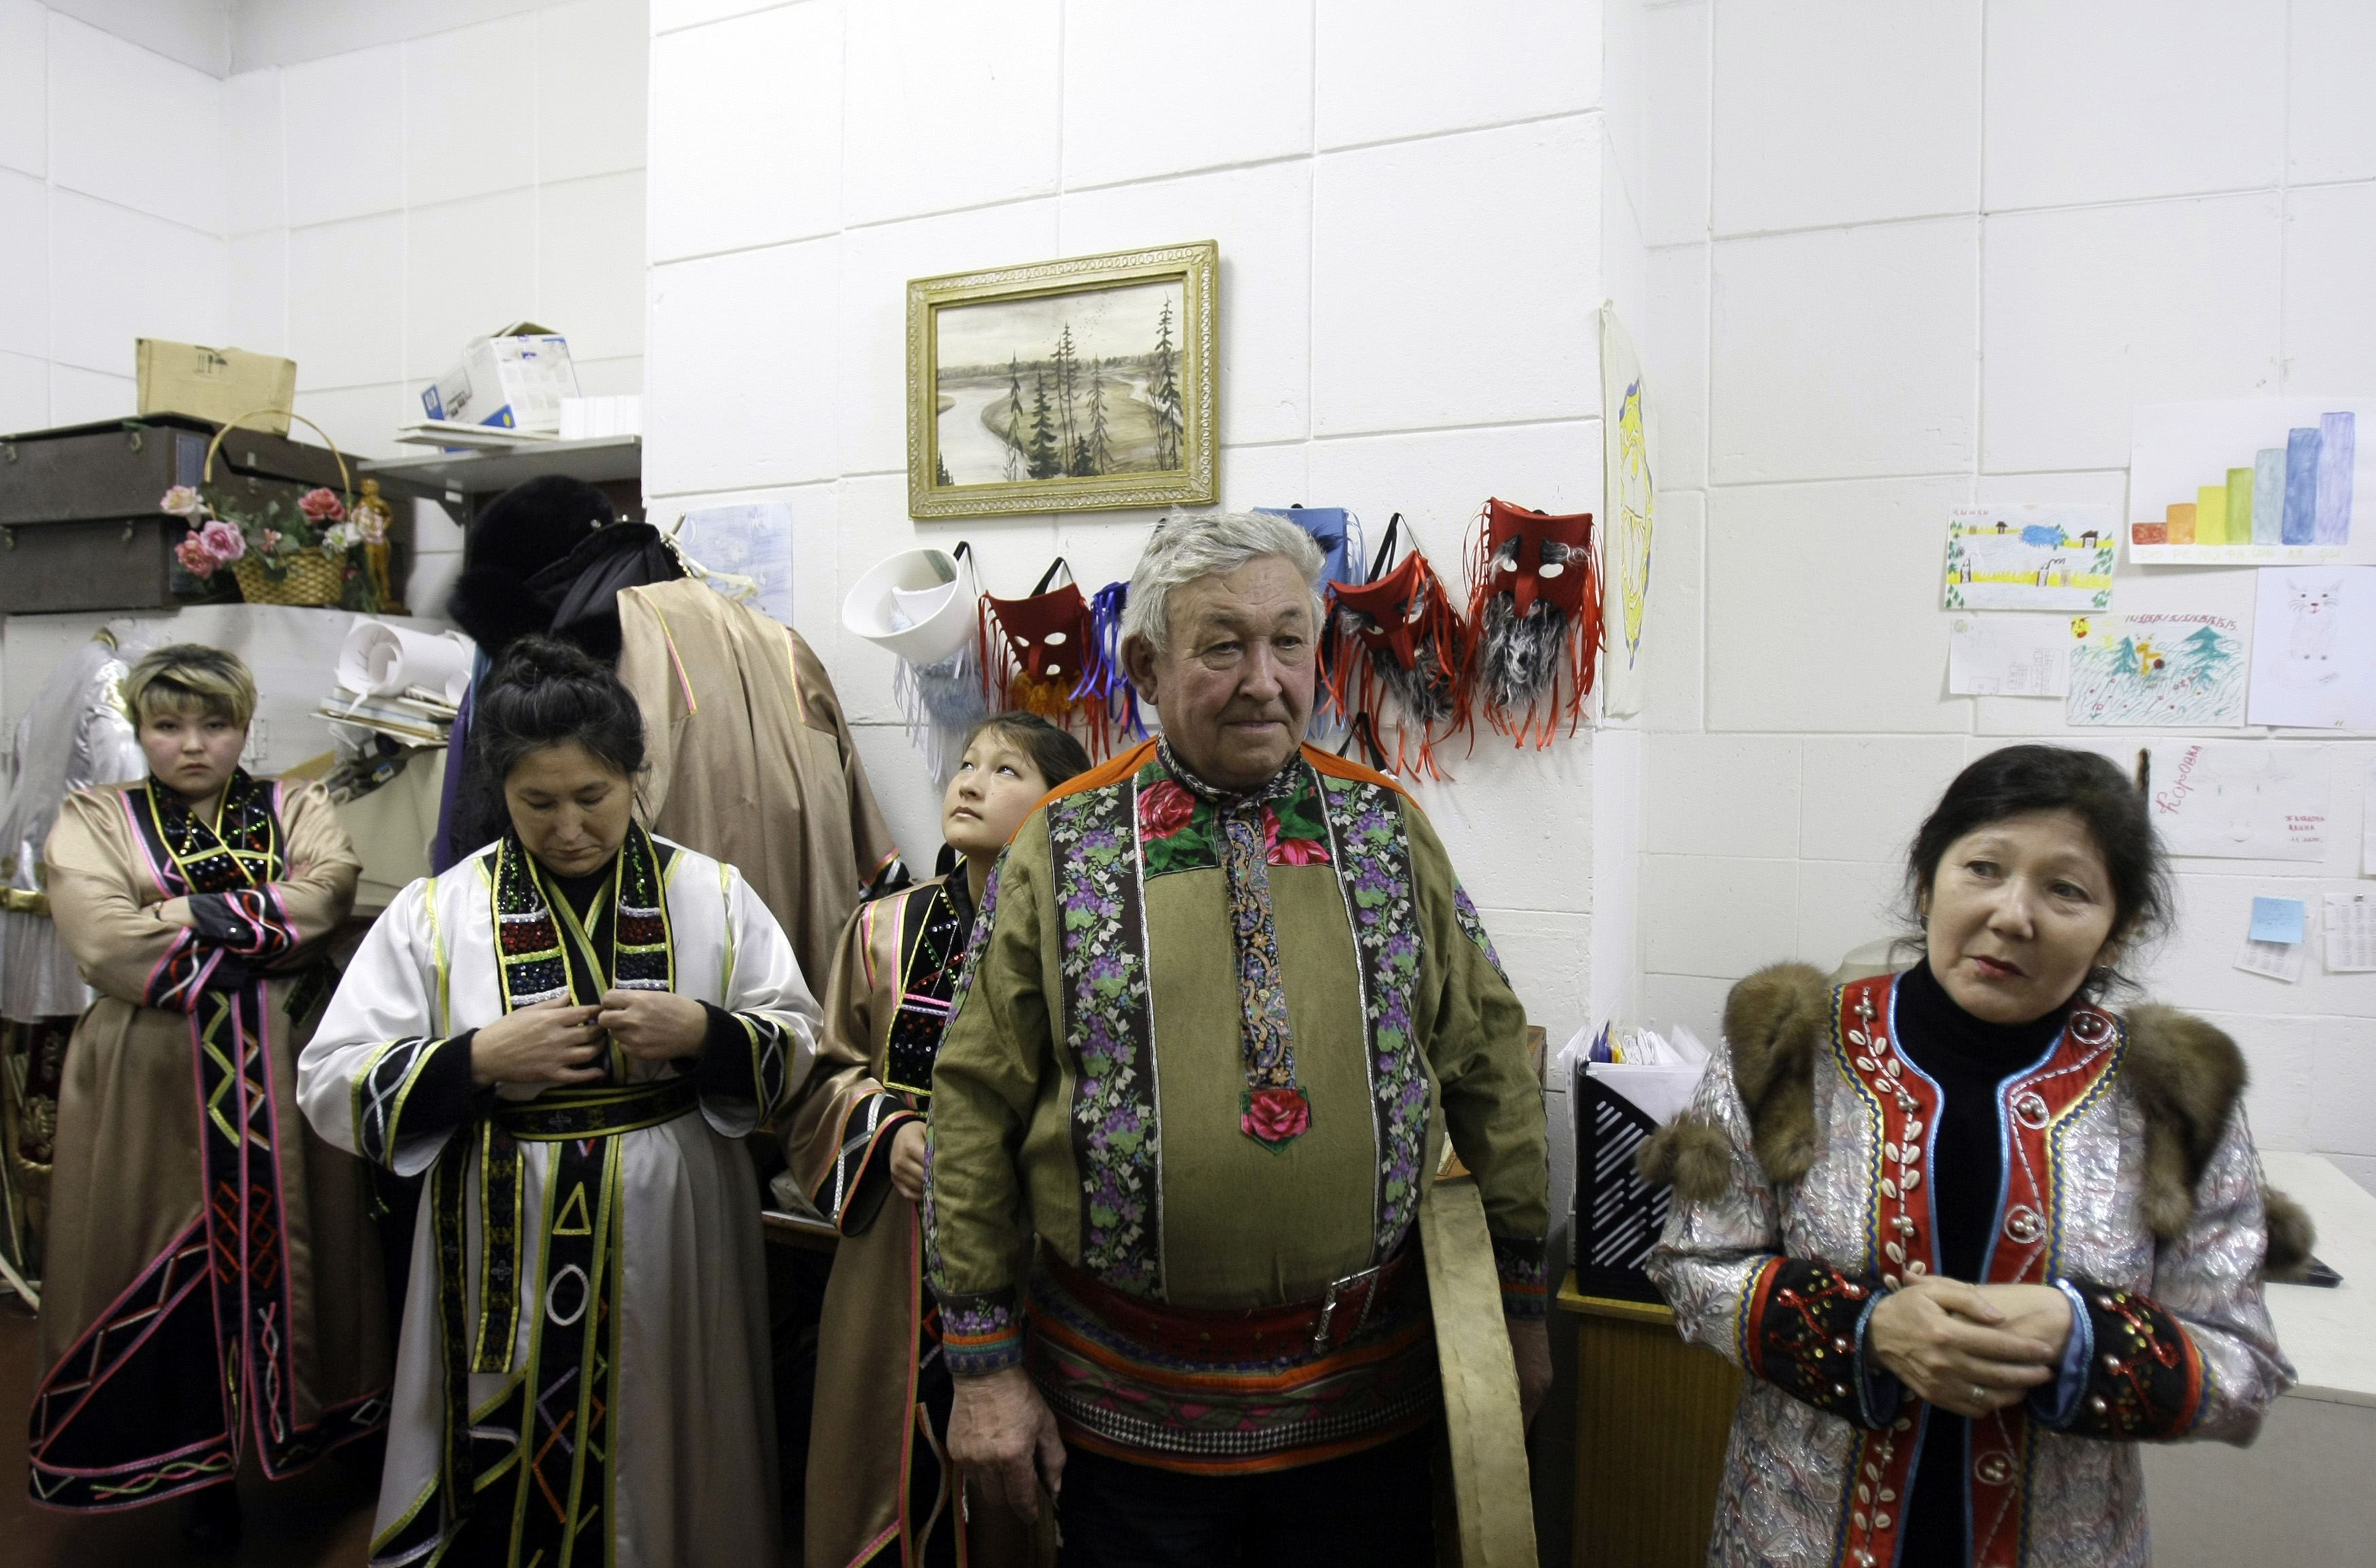 A national Shors ensemble rehearses in Novokuznetsk, Russia on Dec. 19, 2008.